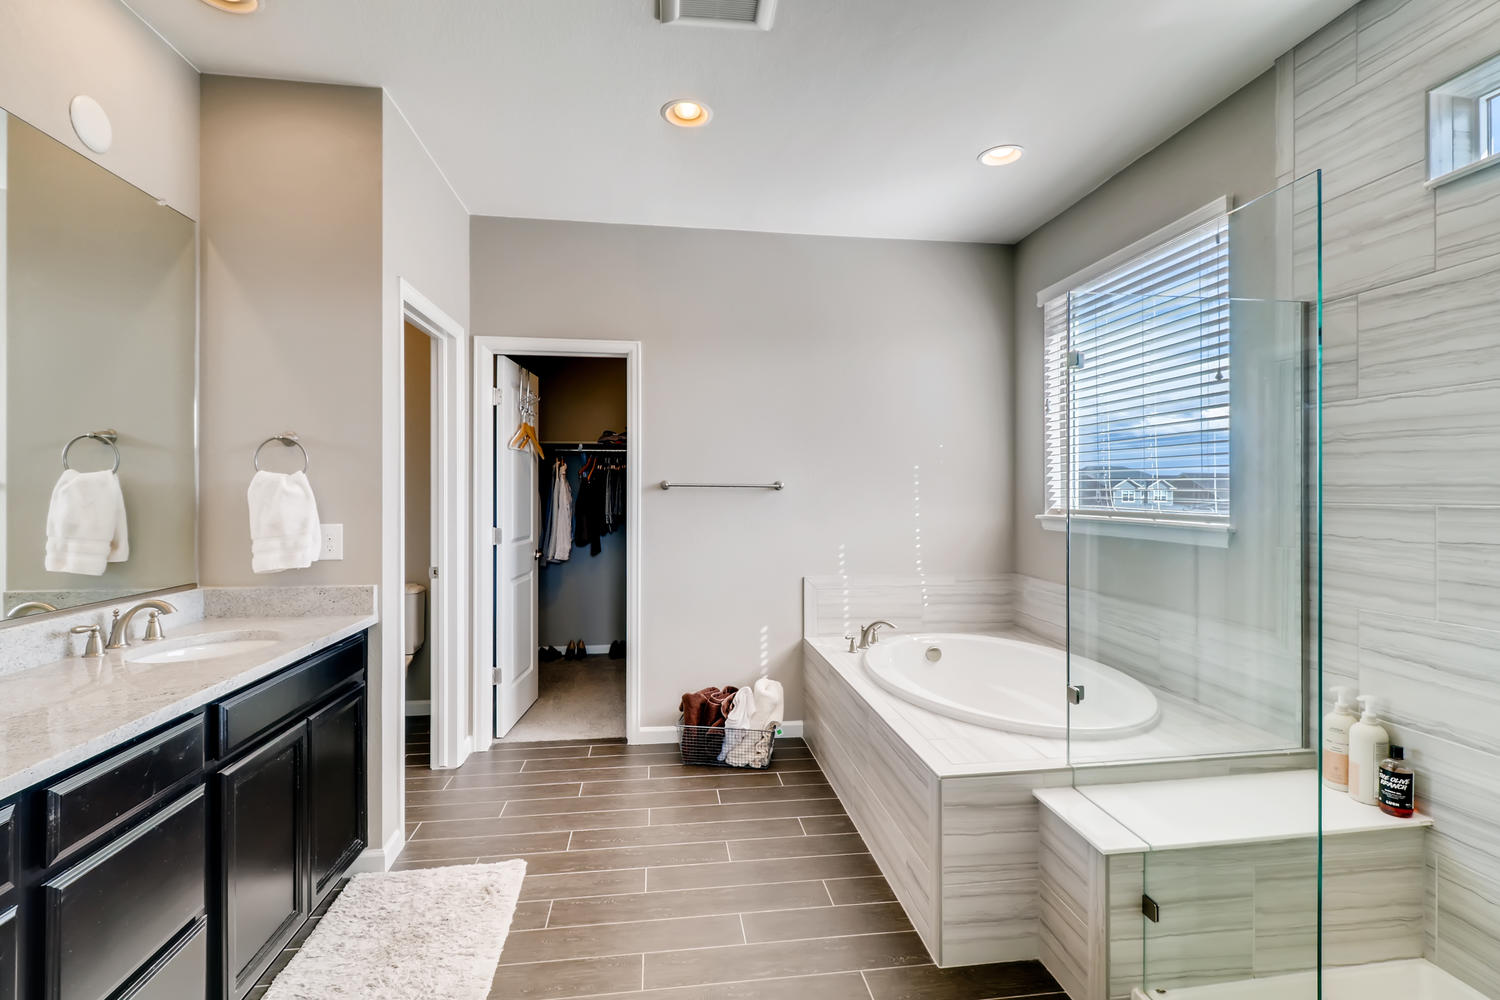 REAL ESTATE LISTING: 1029 Redbud Circle Master Bath